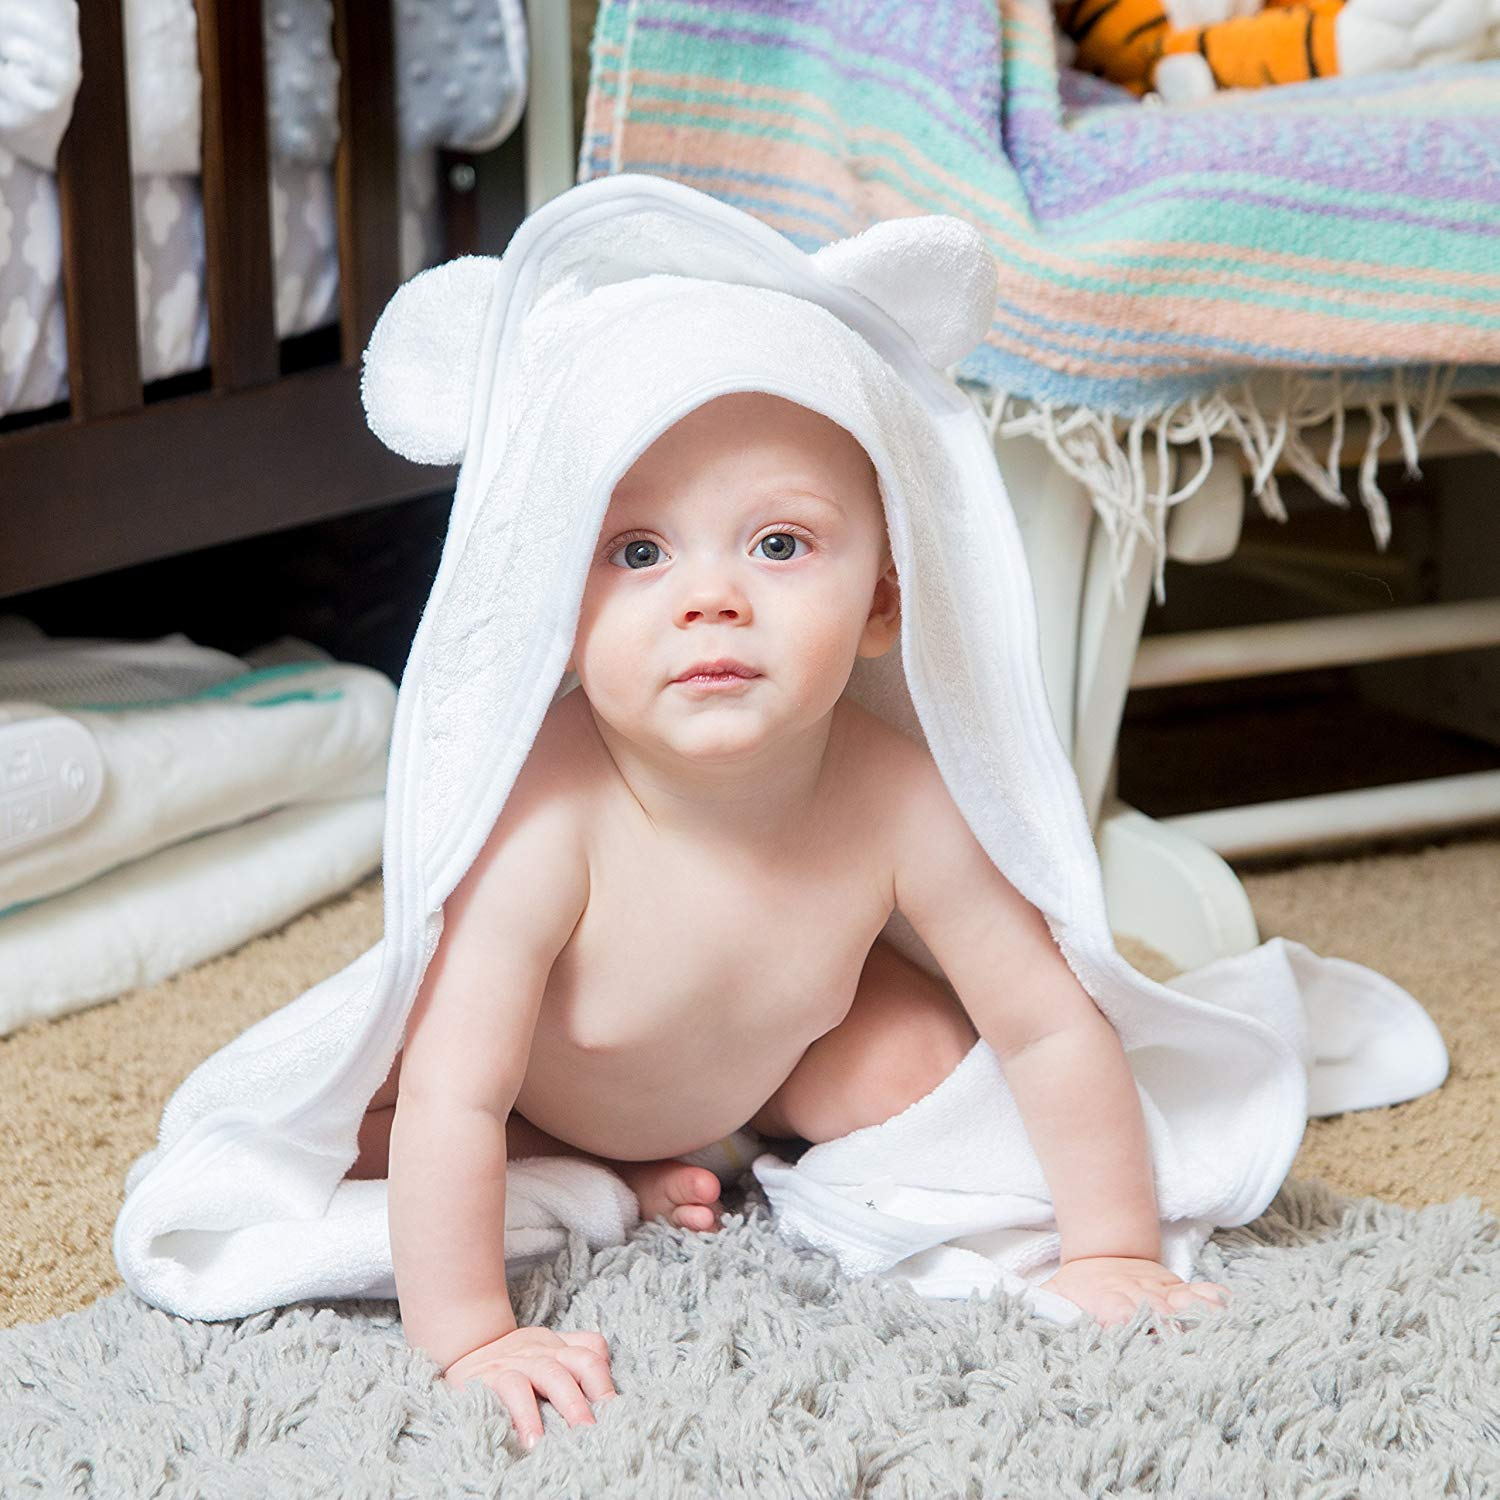 White Bamboo Hooded Baby Towel 100 Organic Unisex Towel Highly Absorbent And Super Soft Bath Towel For The Pool And Th B07211F5TG 2